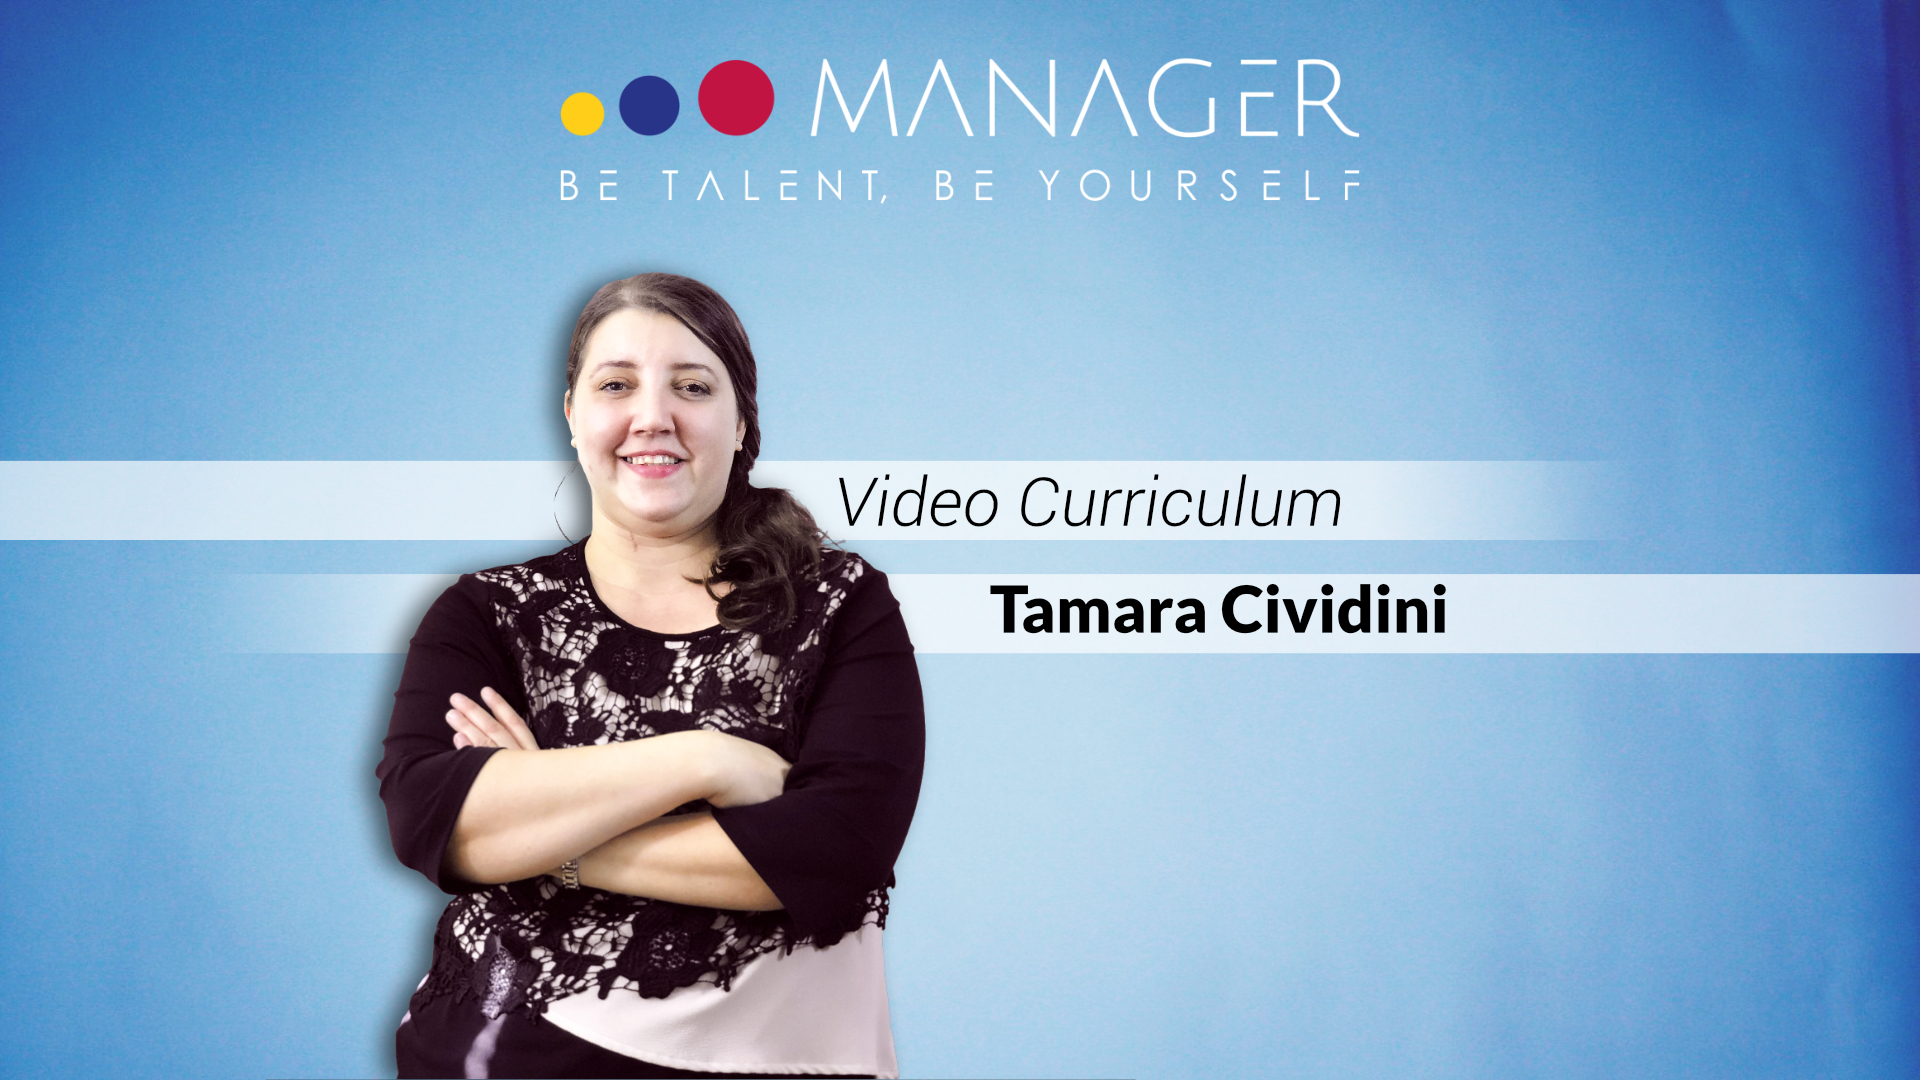 video curriculum tamara cividini